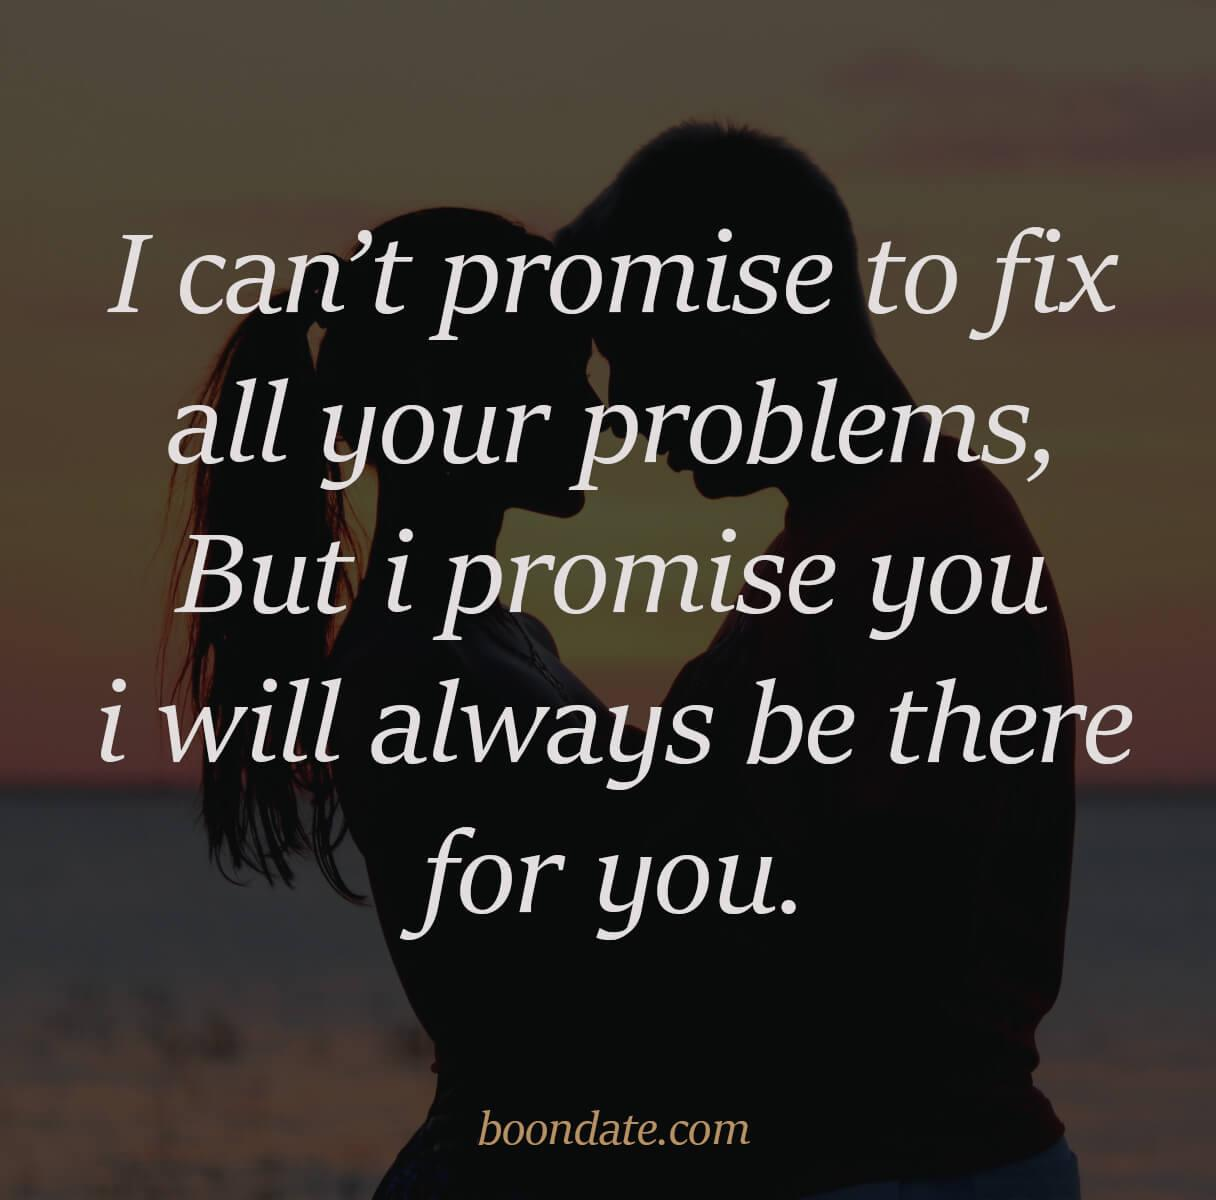 i will always be there for you.